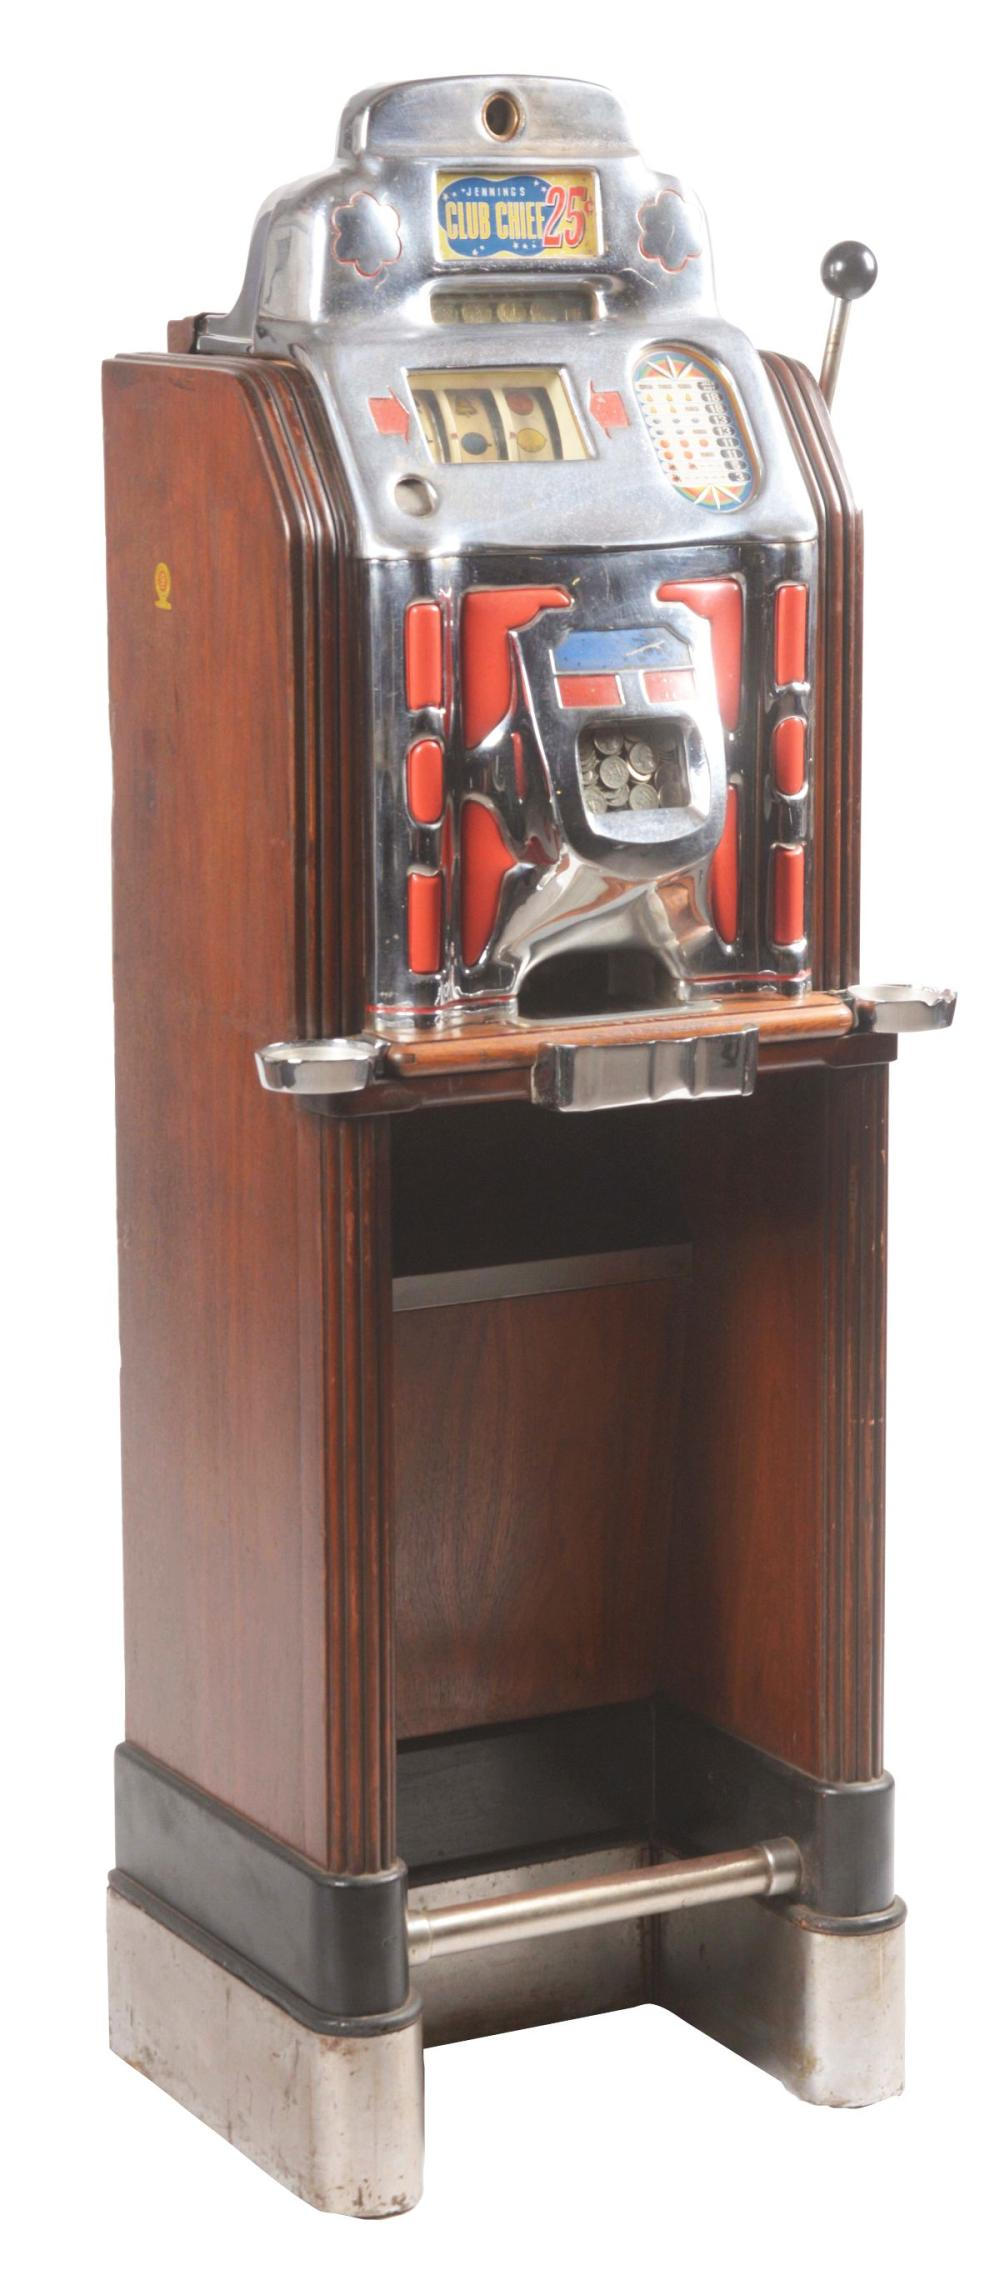 5¢ JENNINGS CLUB CHIEF CONSOLE SLOT MACHINE.